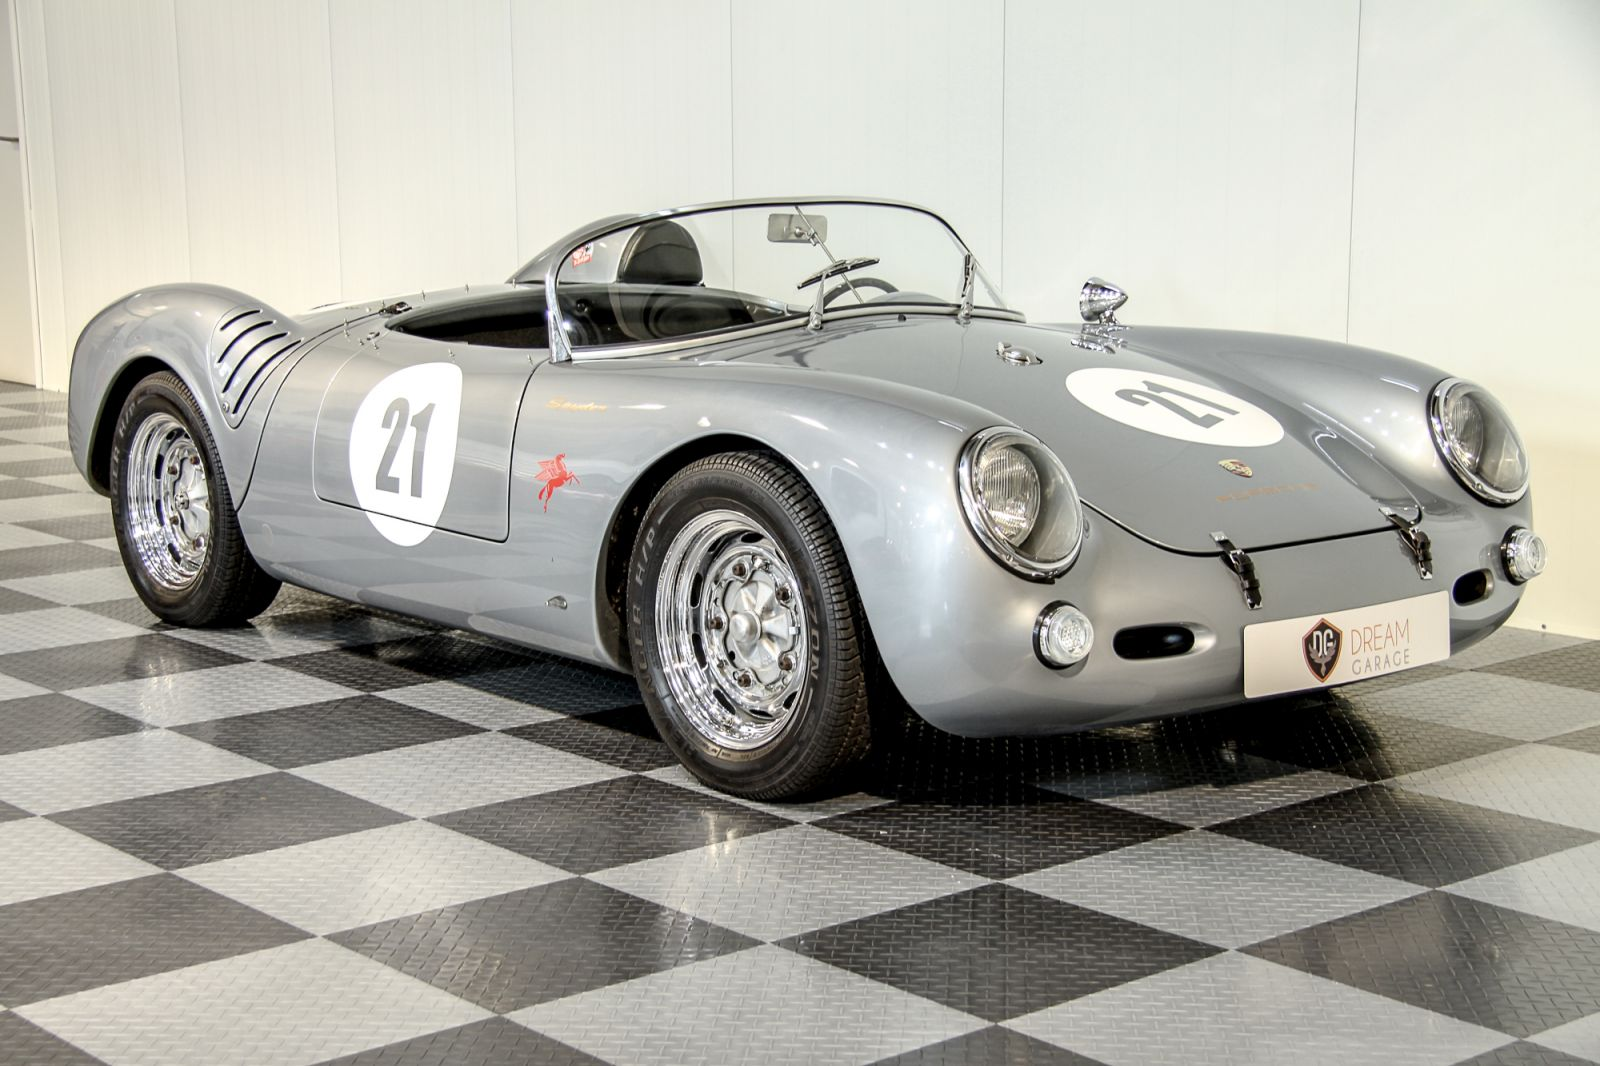 Quot Tweedland Quot The Gentlemen S Club Beck 1955 Porsche 550